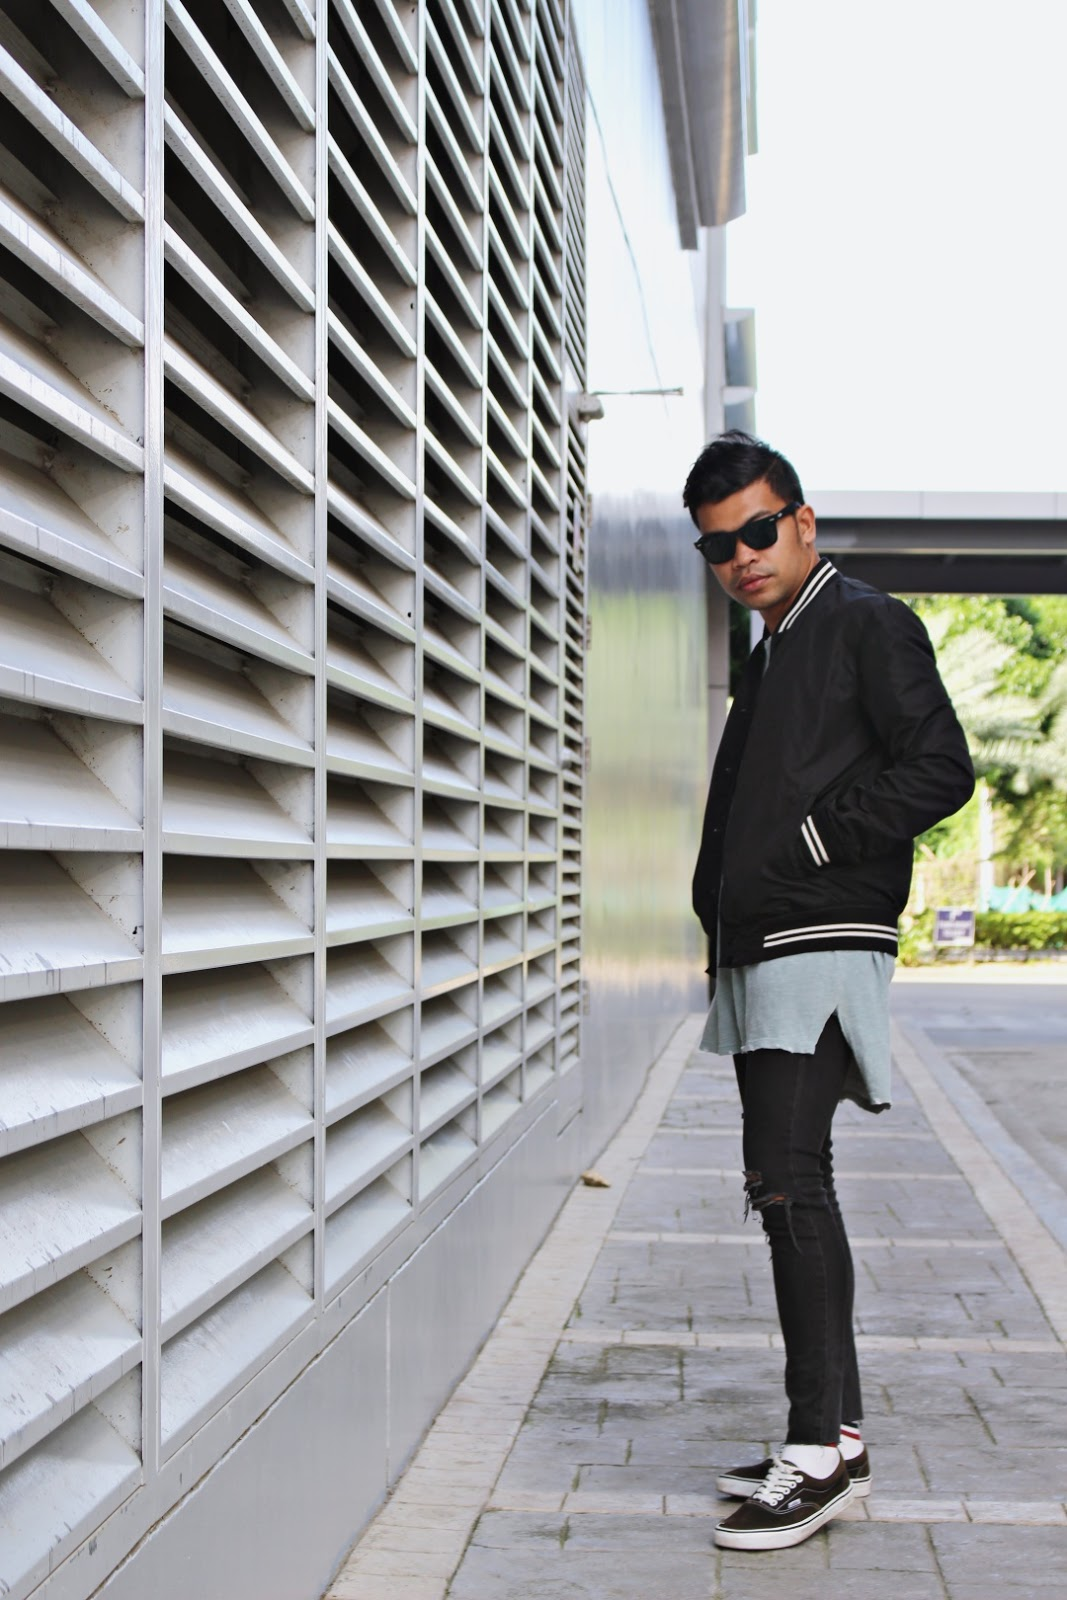 cebu-men-fashion-almostablogger-blogger.jpg